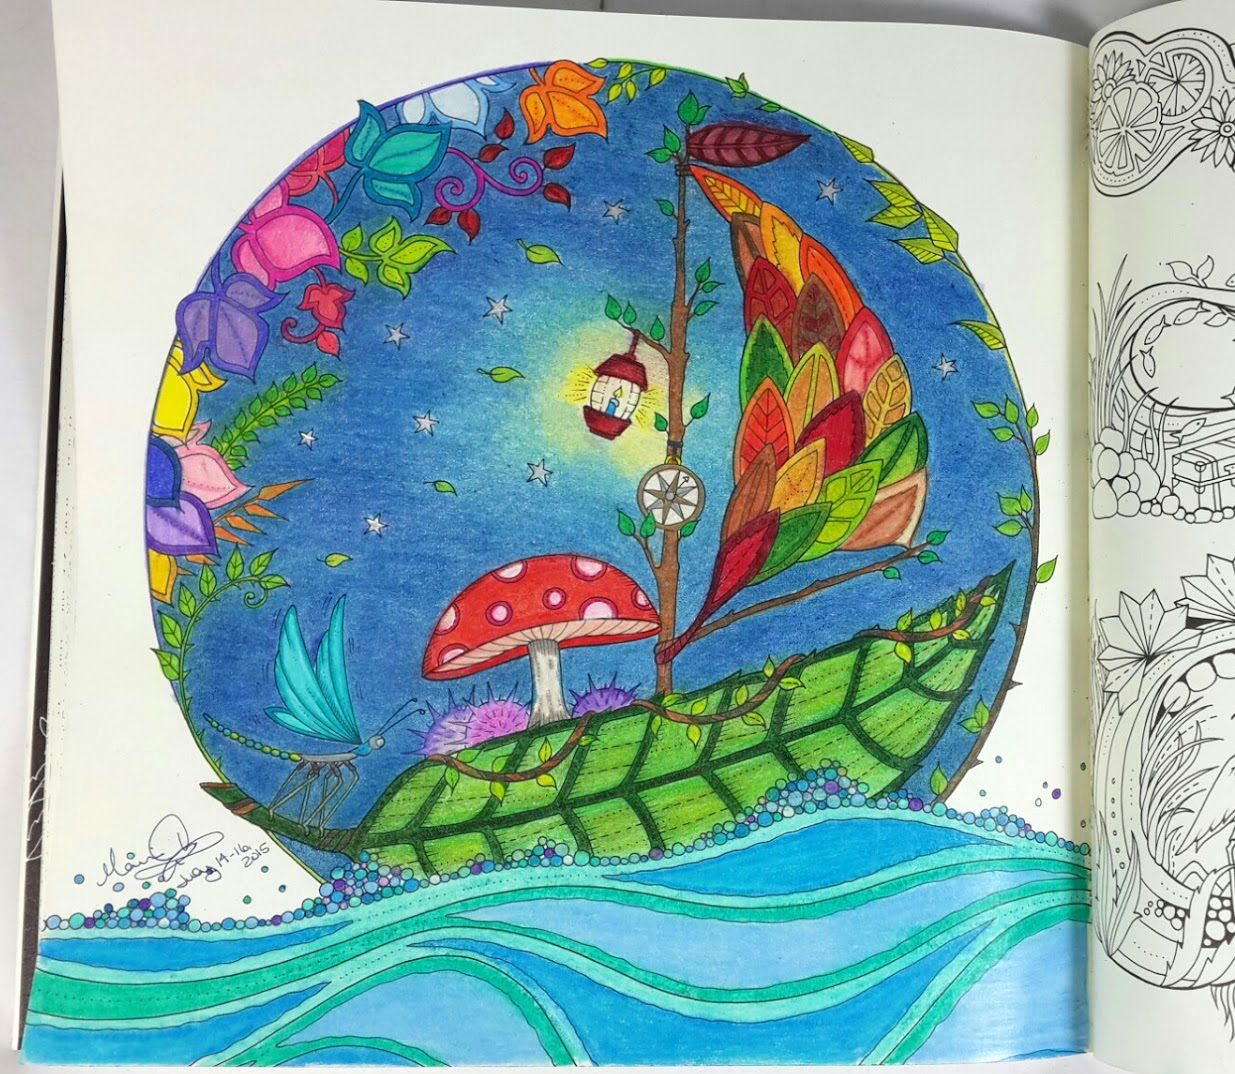 Enchanted forest coloring book website - Finished Color Page Of The Leaf Sailboat From The Enchanted Forest Coloring Book